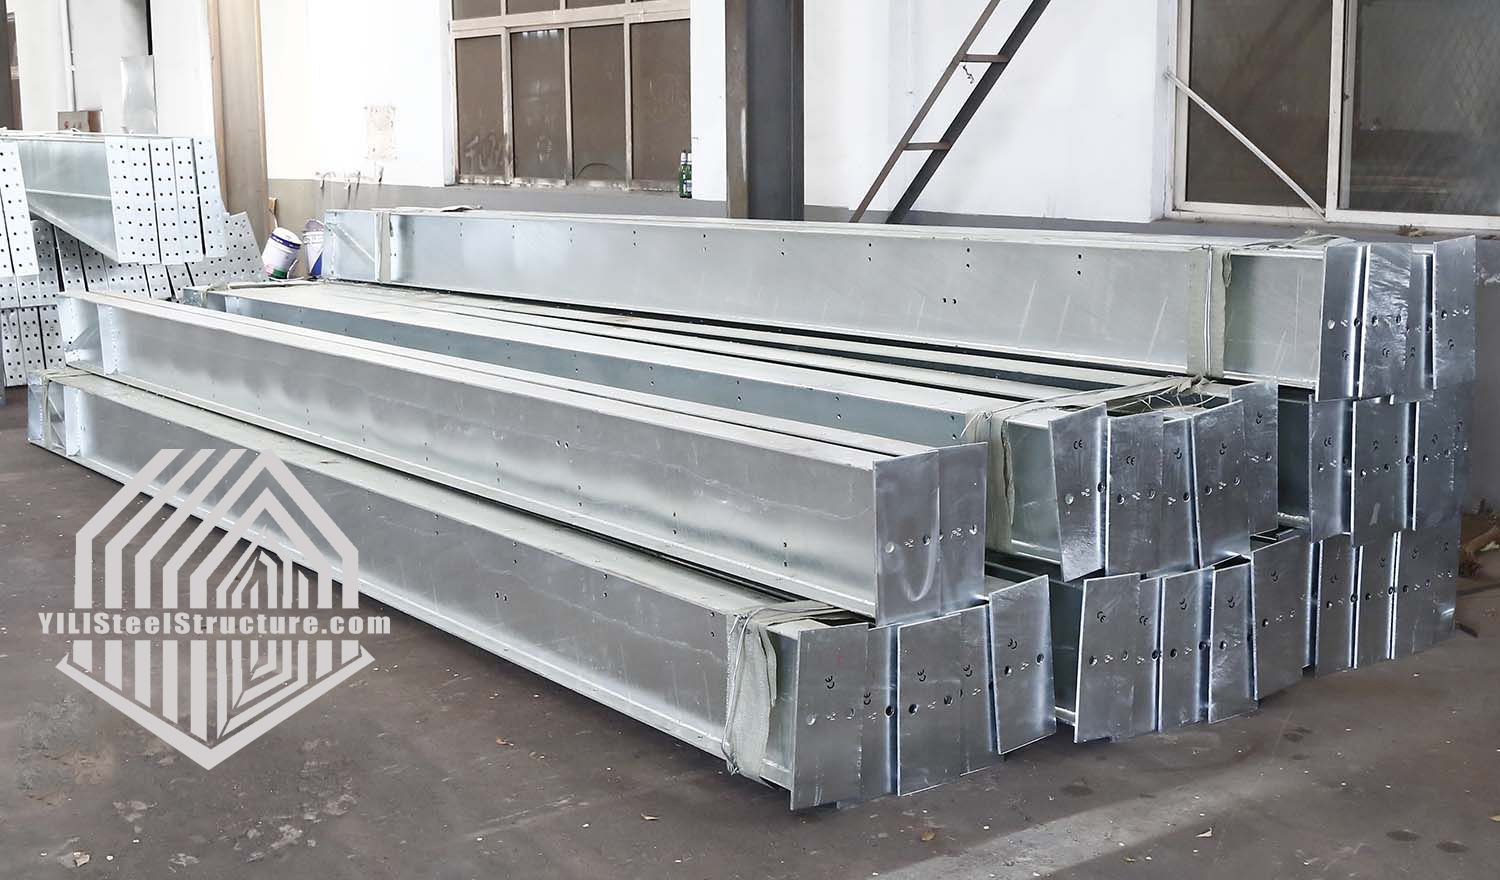 Hot Sell Structural Galvanized Steel H Beam Low Price In 2020 Steel Structure Galvanized Steel Steel